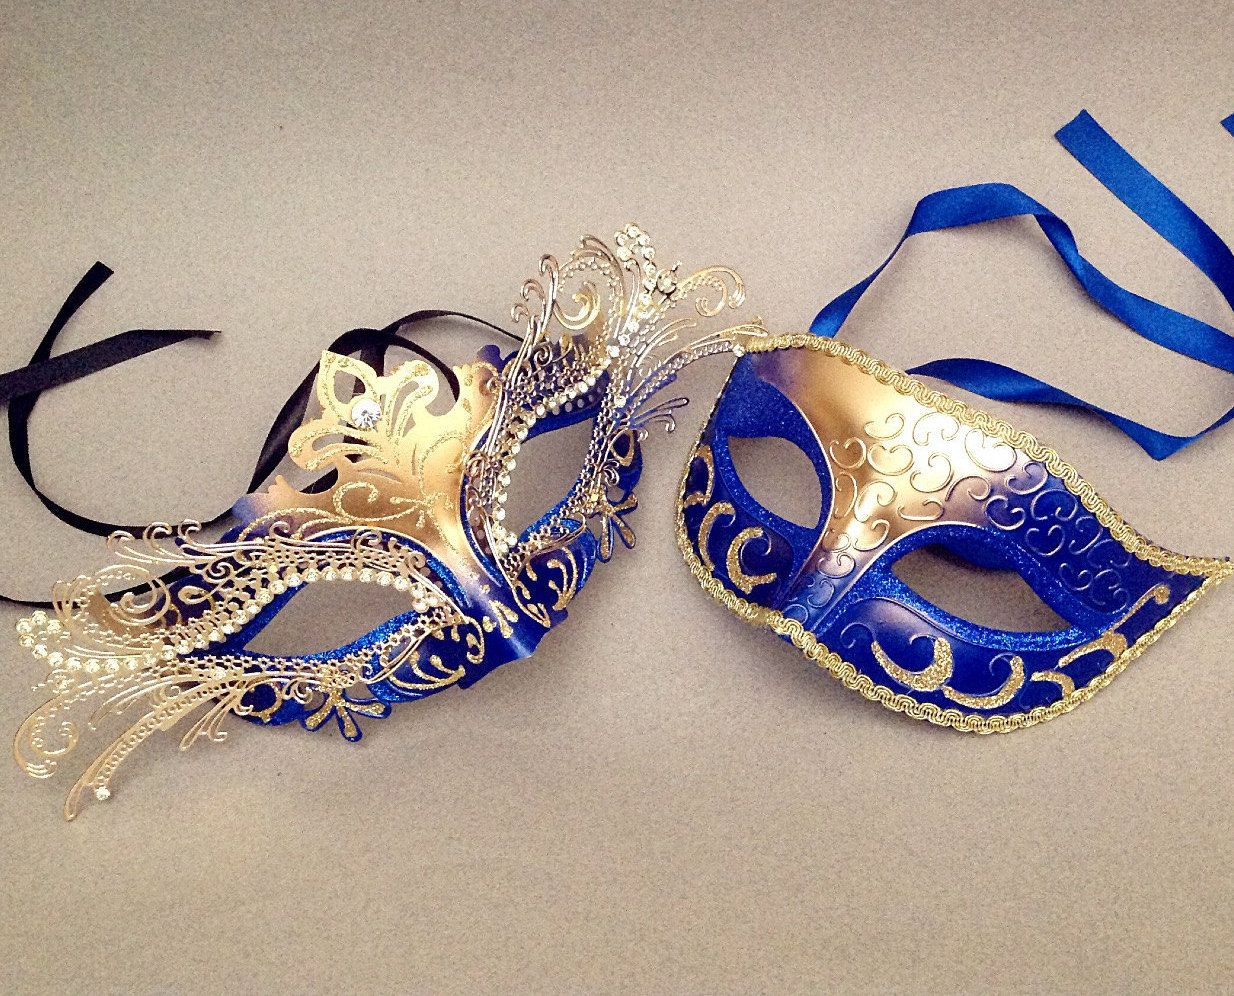 Masquerade mask masquerade mask vine mask metal lace masquerade - Gold Accent Blue Couple Masquerade Mask Pair Luxury Laser Cut Metal Gold Blue Mask Costume Prom